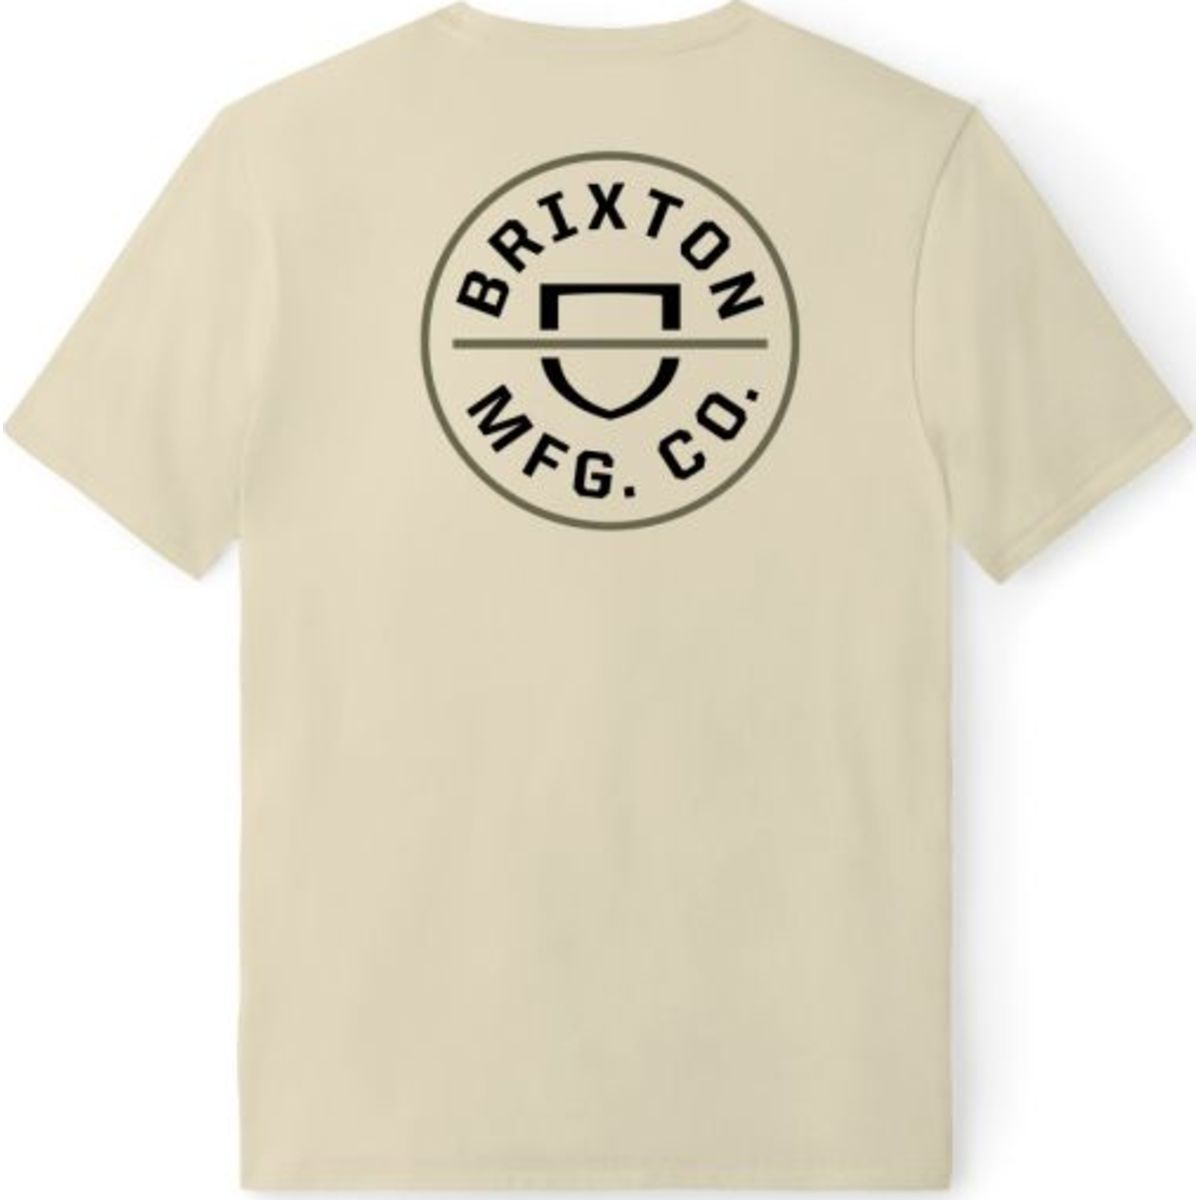 BRIXTON CREST RECYCLED S/S STANDARD TEE - SAND